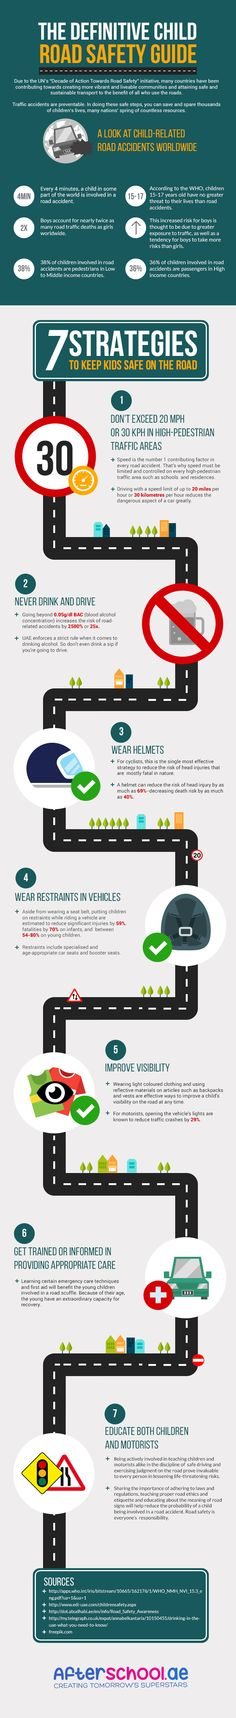 Definitive Child Road Safety Guide #infographic #RoadSafety #ChildSafety #Driving